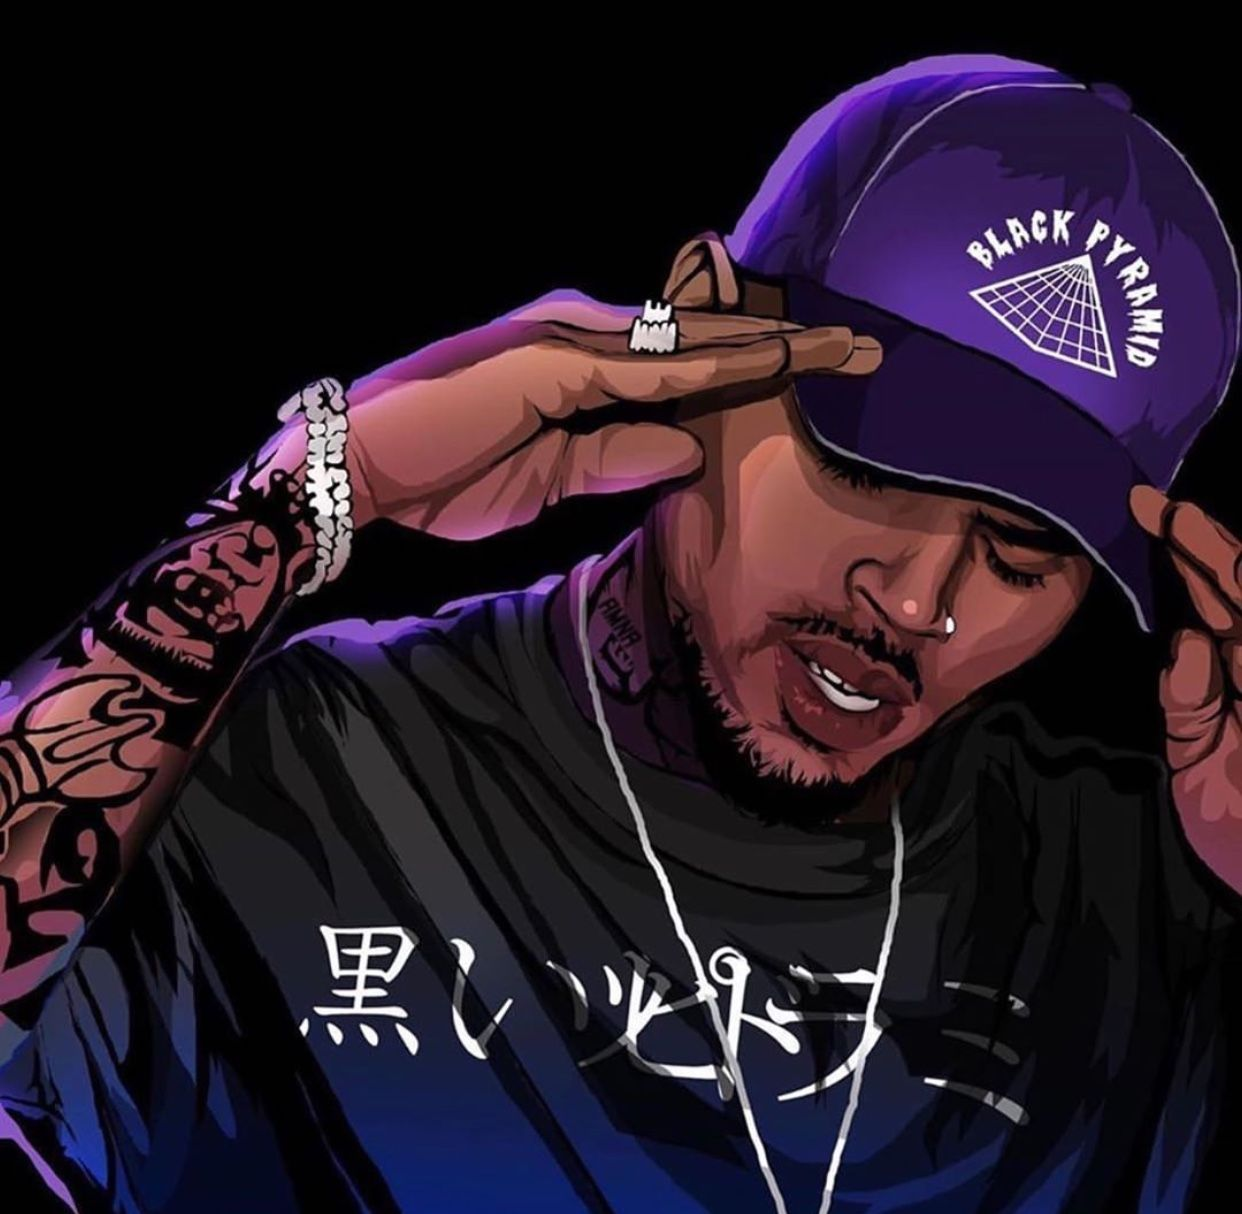 Pin By Zaddy Jg On Music Festival Chris Brown Art Chris Brown Wallpaper Chris Brown